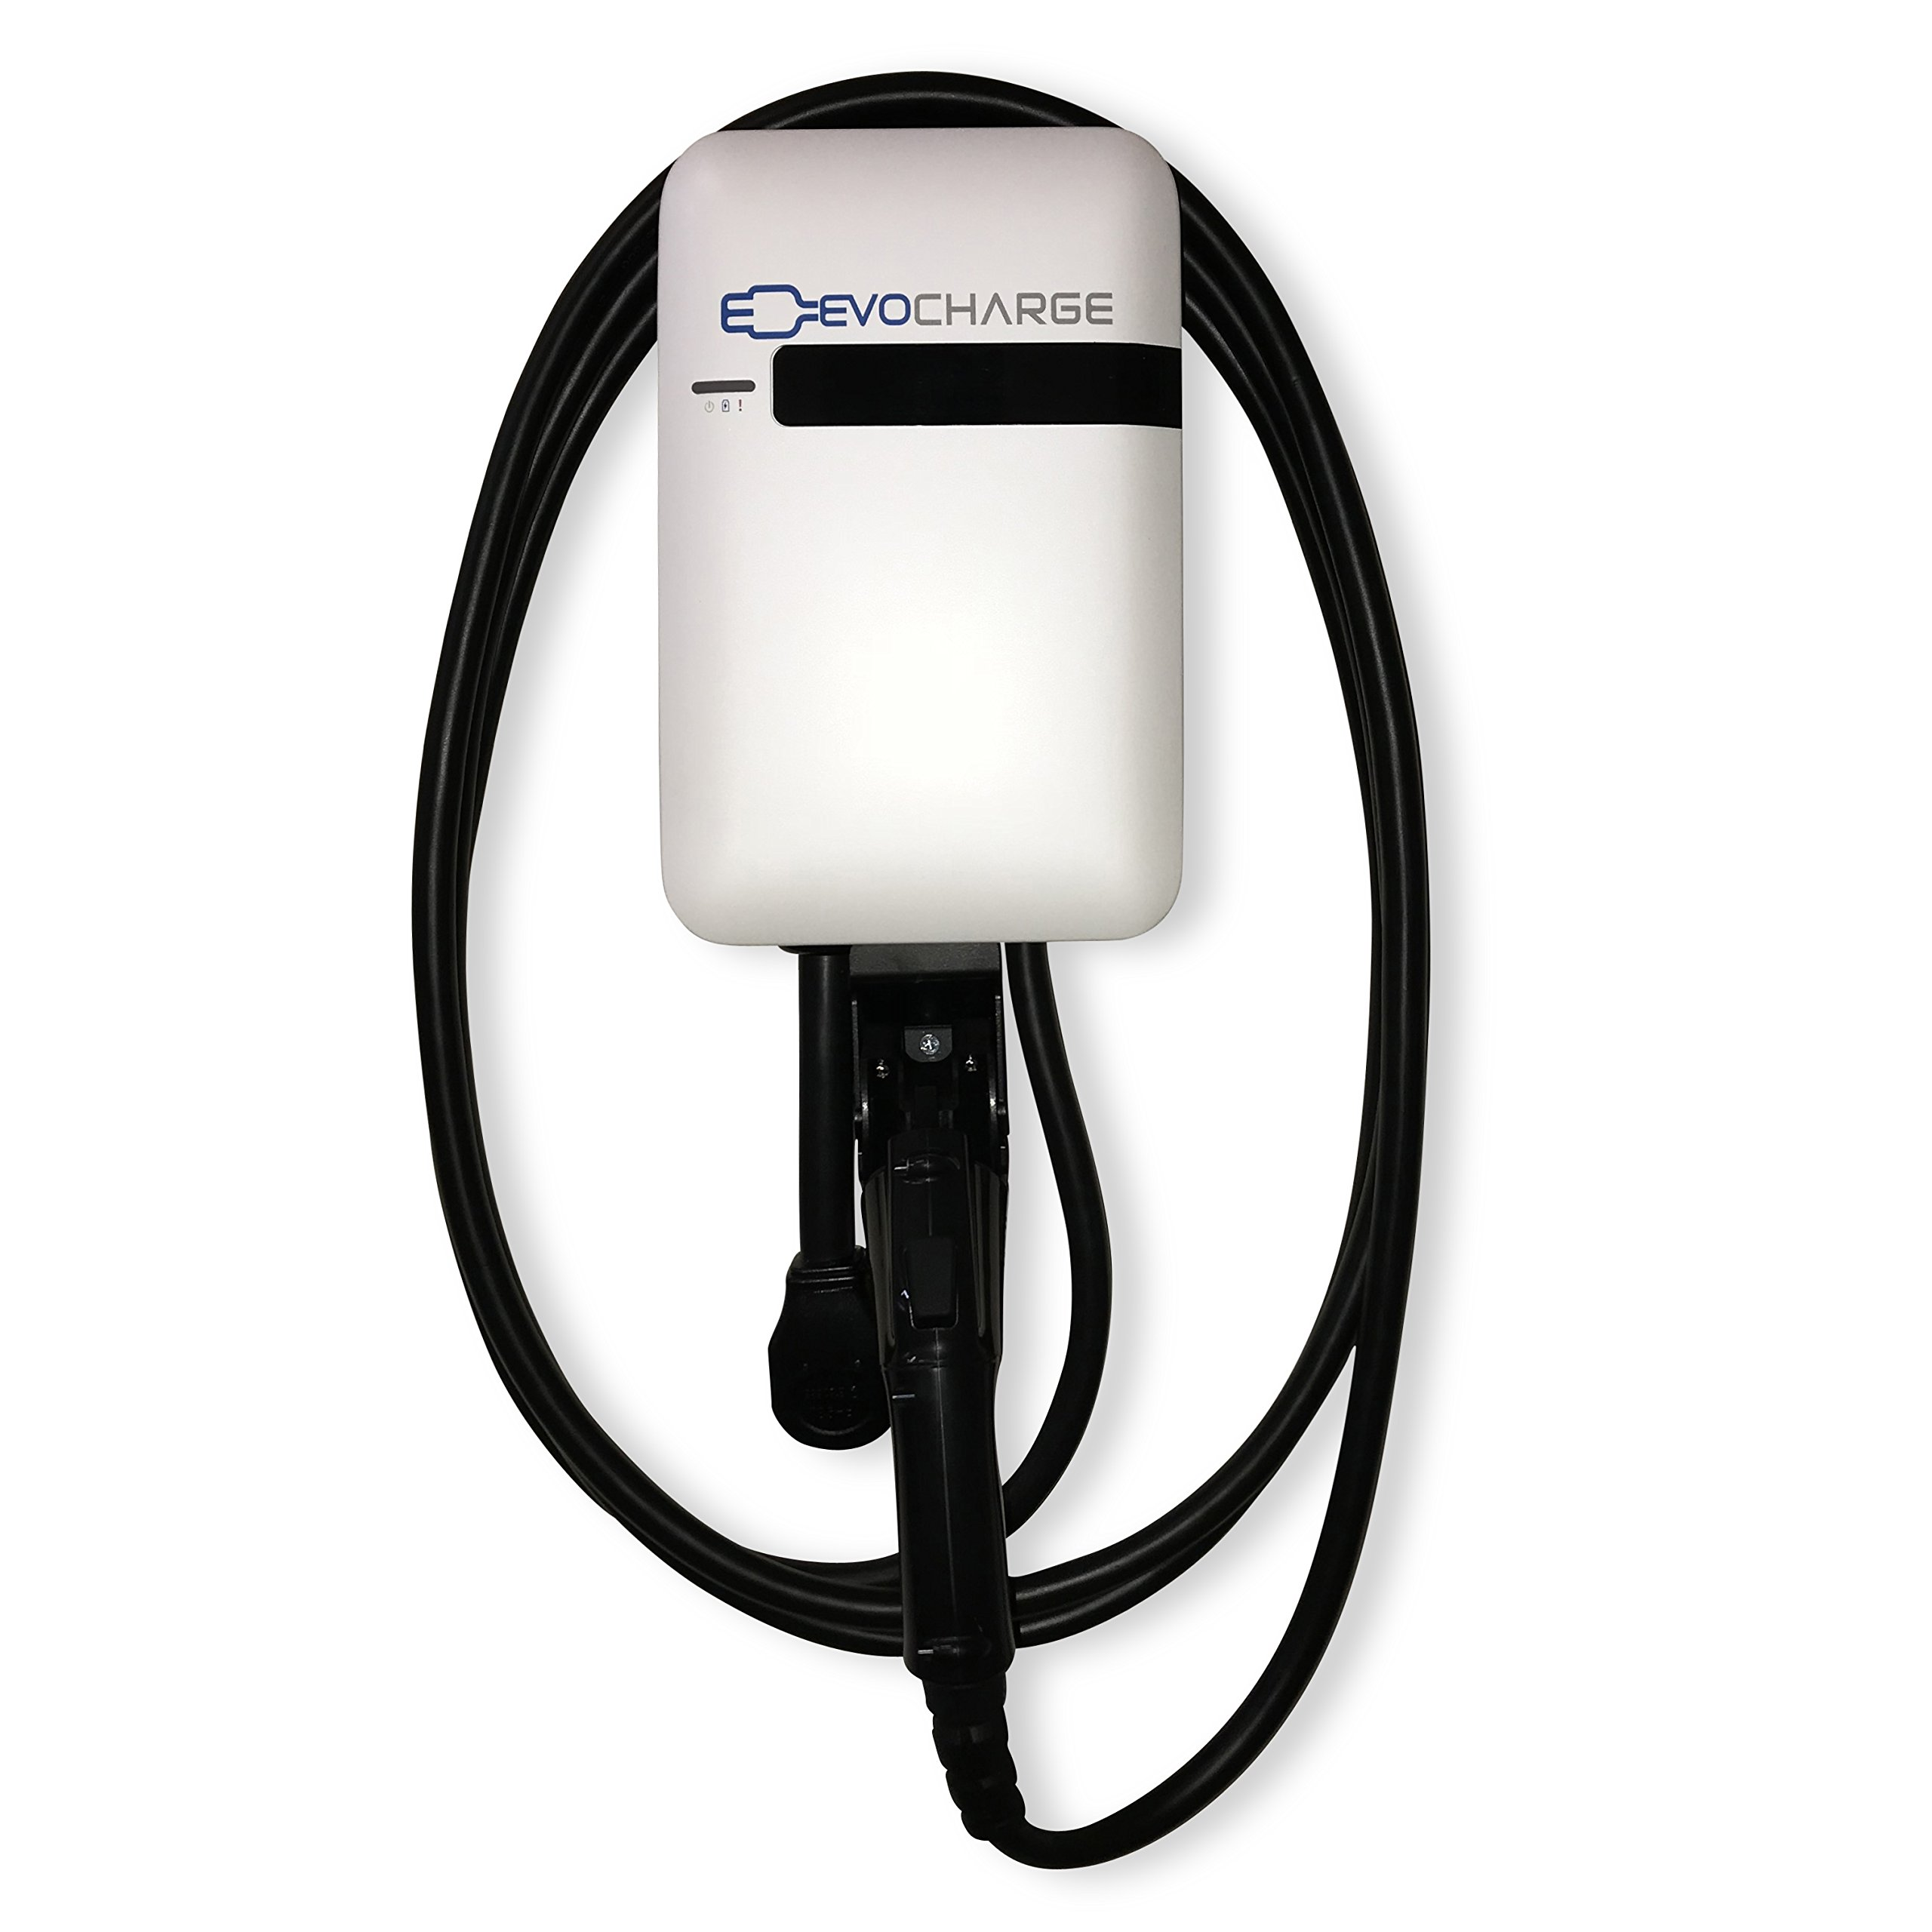 EVoCharge EVoInnovate, Level 2 EV Charger, 240 Volt 32 Amp Electric Vehicle Charging Station, UL Listed EVSE, Wall Mount & Portable, Adjustable Current Output - Charge up to 8X Faster Than Level 1 by EVoCharge (Image #1)